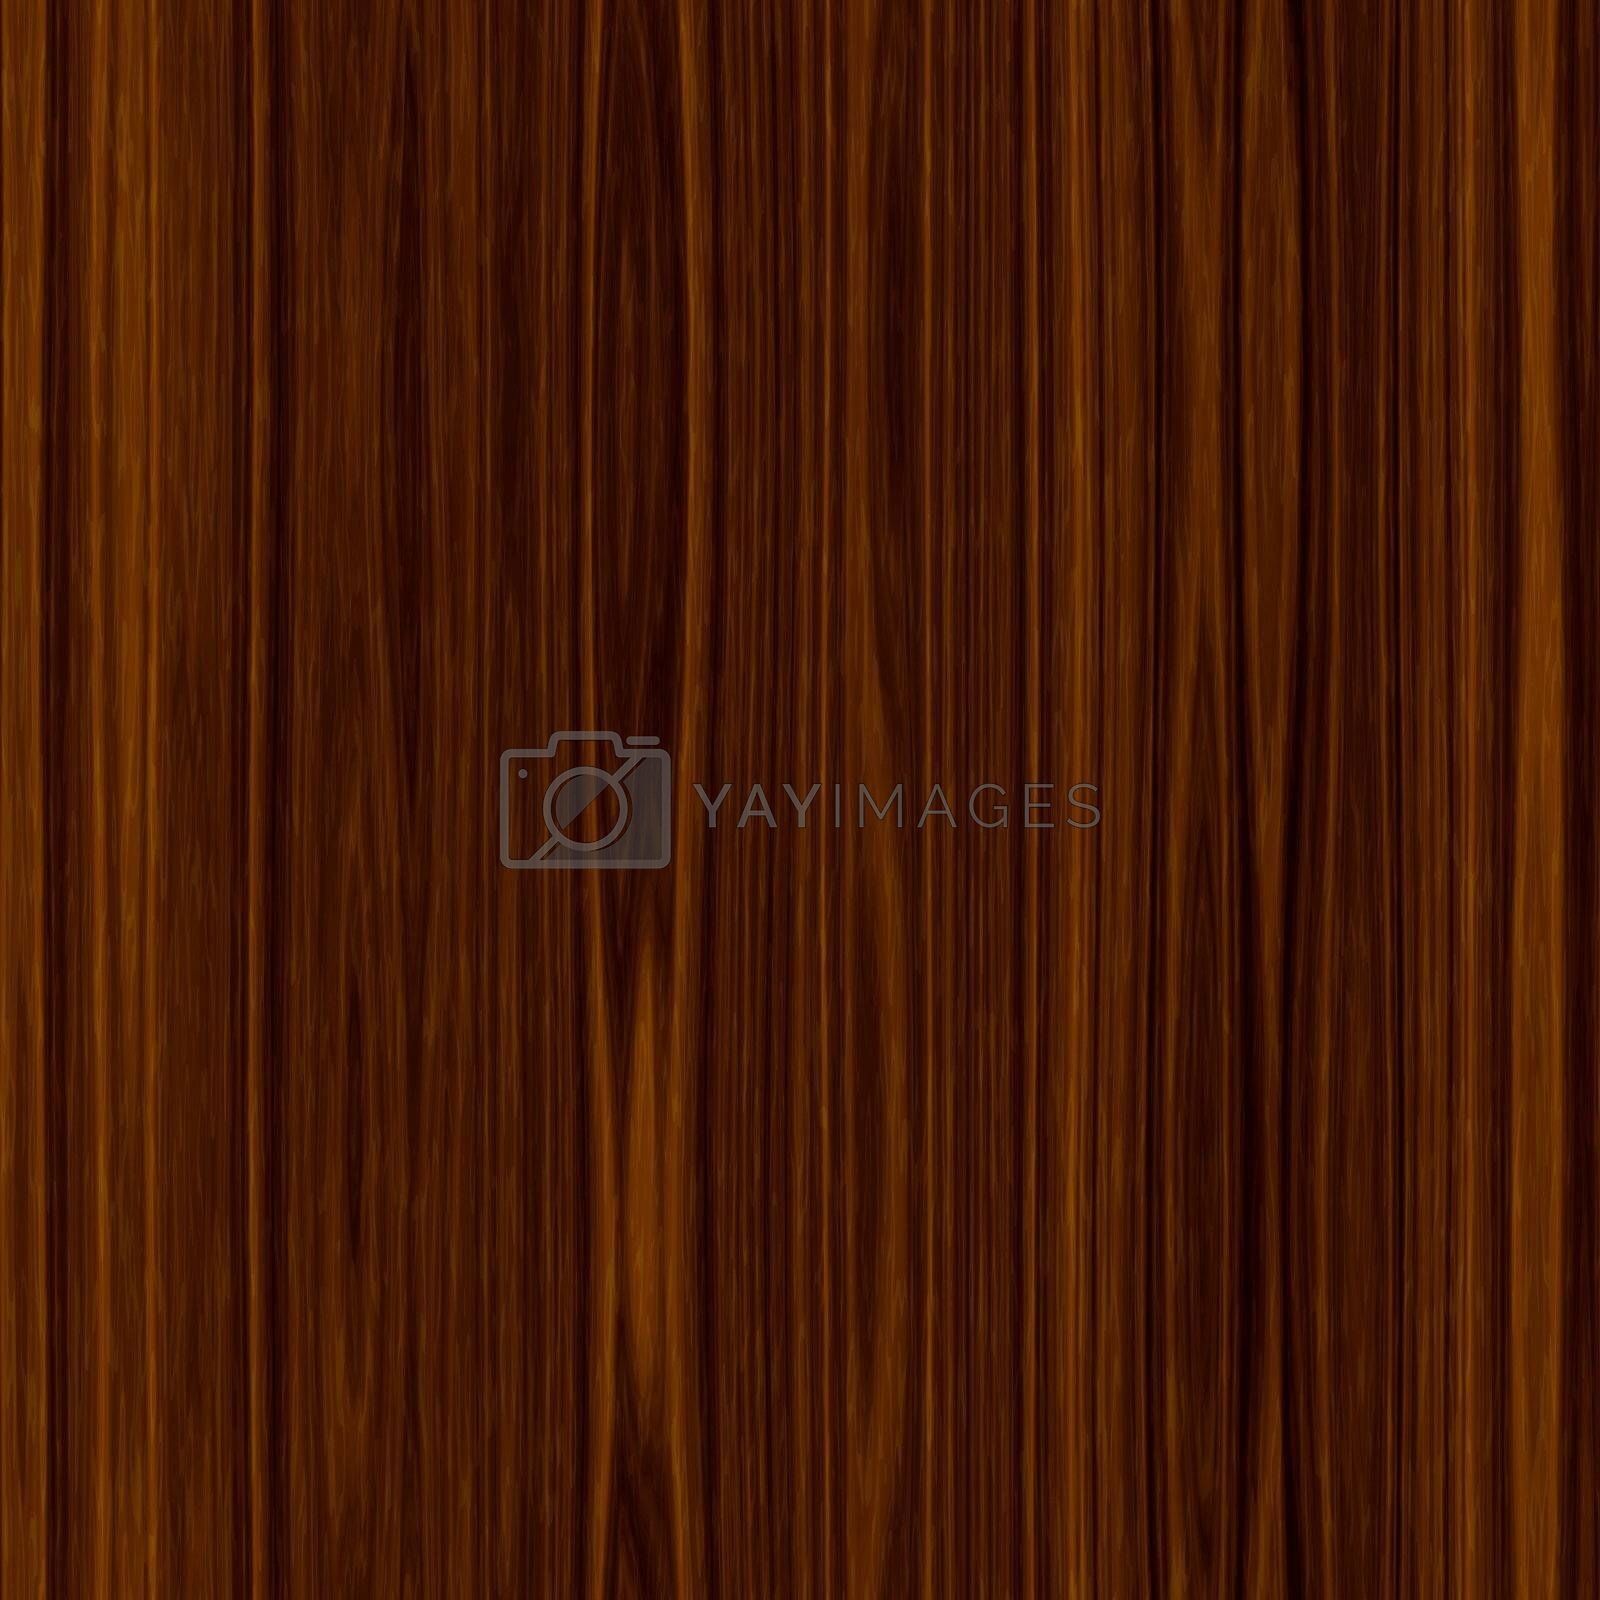 Nice large image of polished wood texture